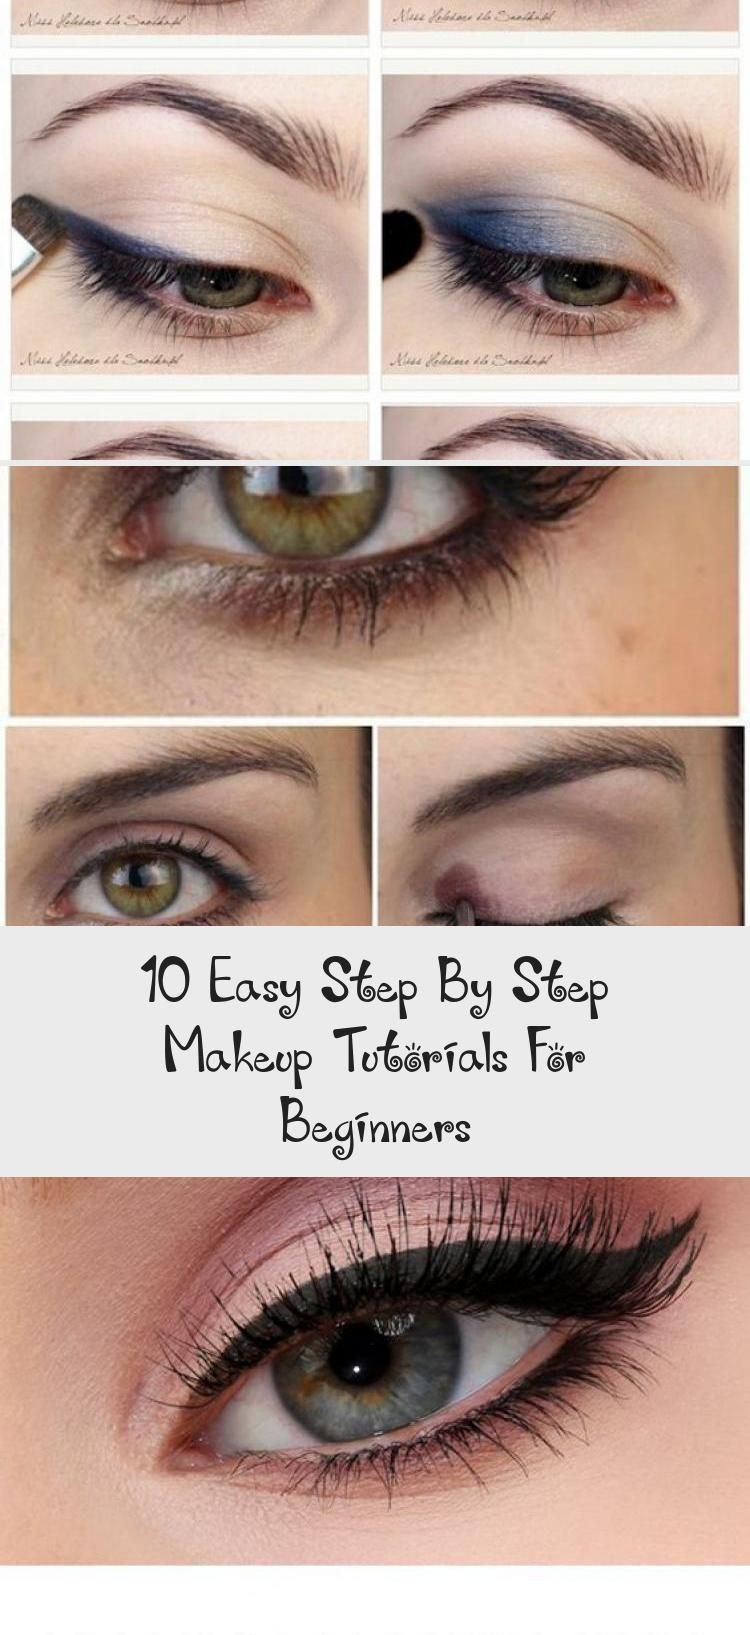 10 Easy Step By Step Makeup Tutorials For Beginners #EyemakeupstepbystepLipstick...#beginners #easy #eyemakeupstepbysteplipstick #makeup #step #tutorials